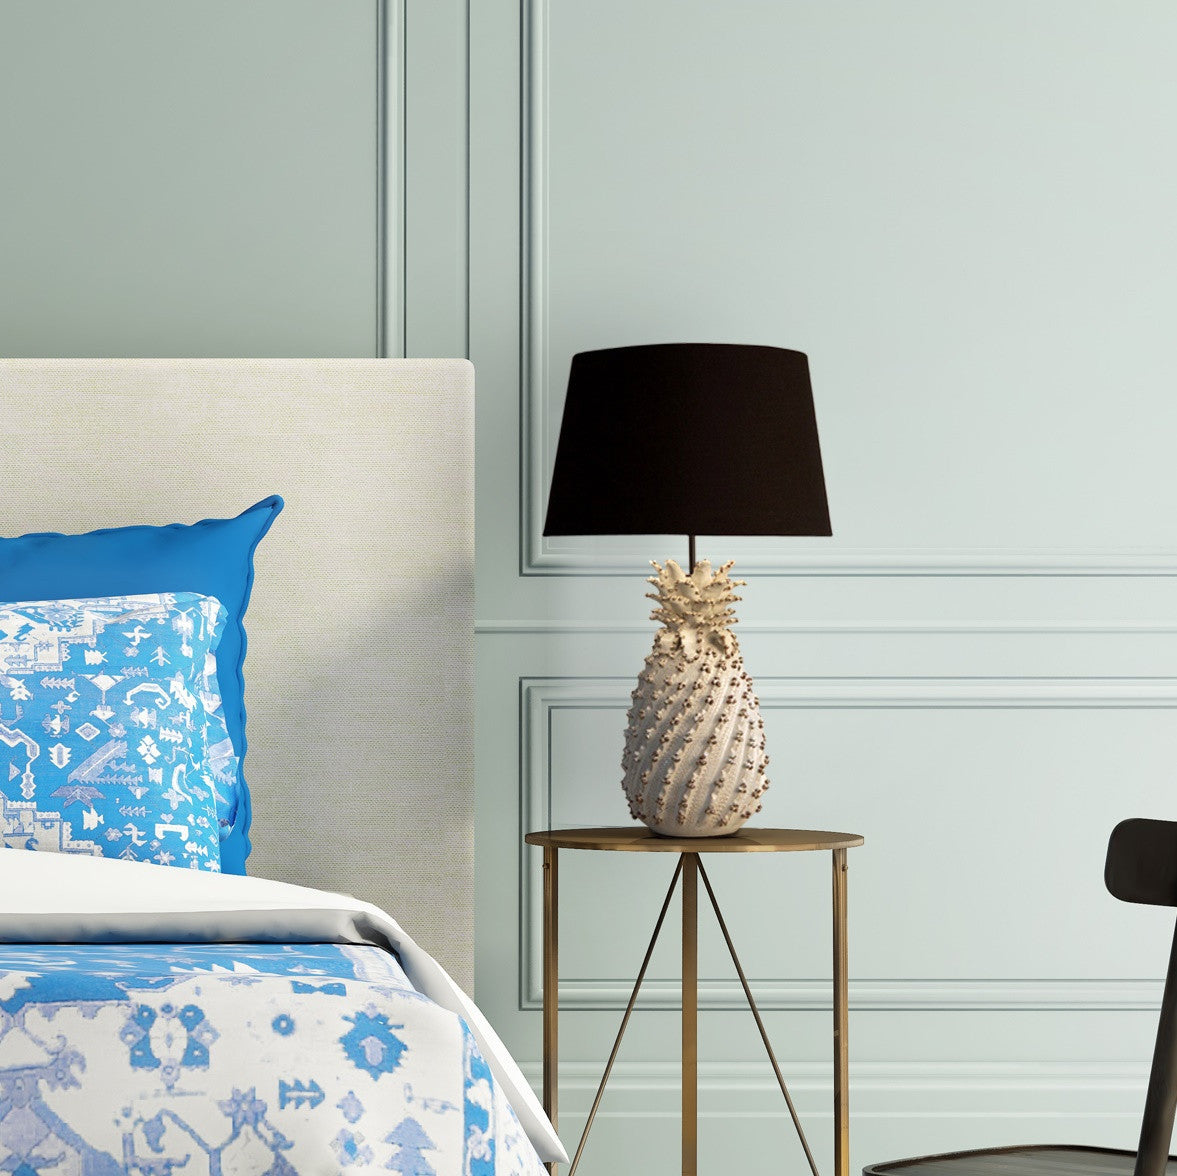 Wonderful Scandinavian Bedside Table Lamp | Lighting Collective Pineapple Table Lamp  In Bedroom | Lighting Collective ... Great Ideas